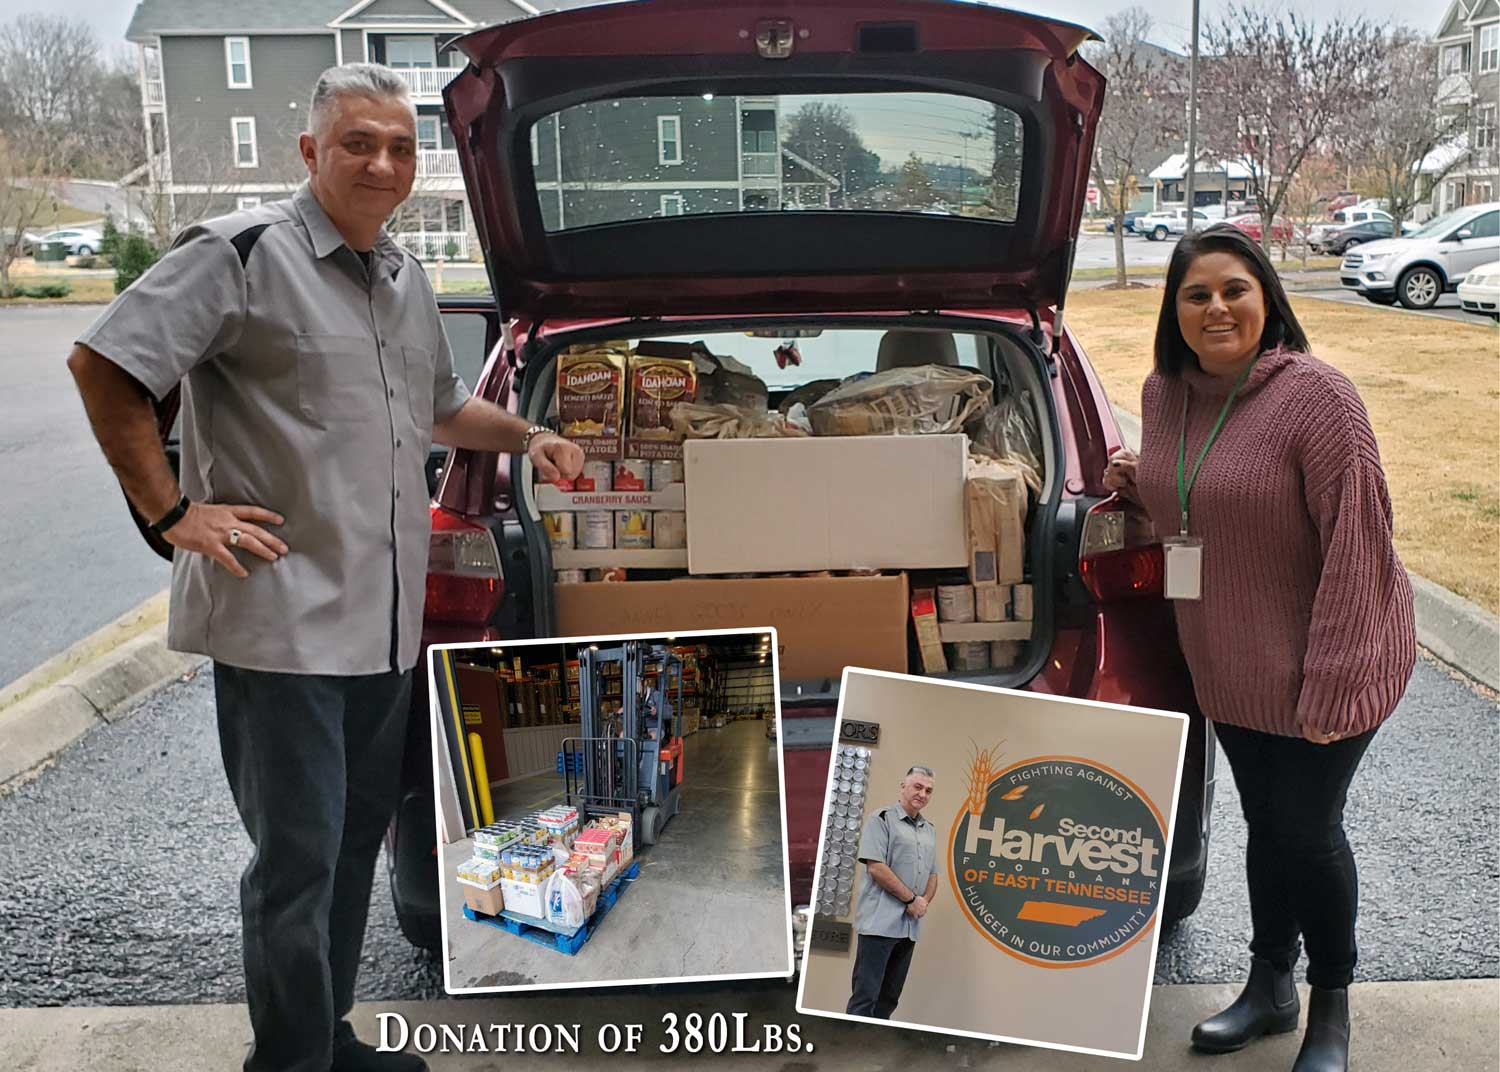 Food Drive For Second Harvest Food Bank